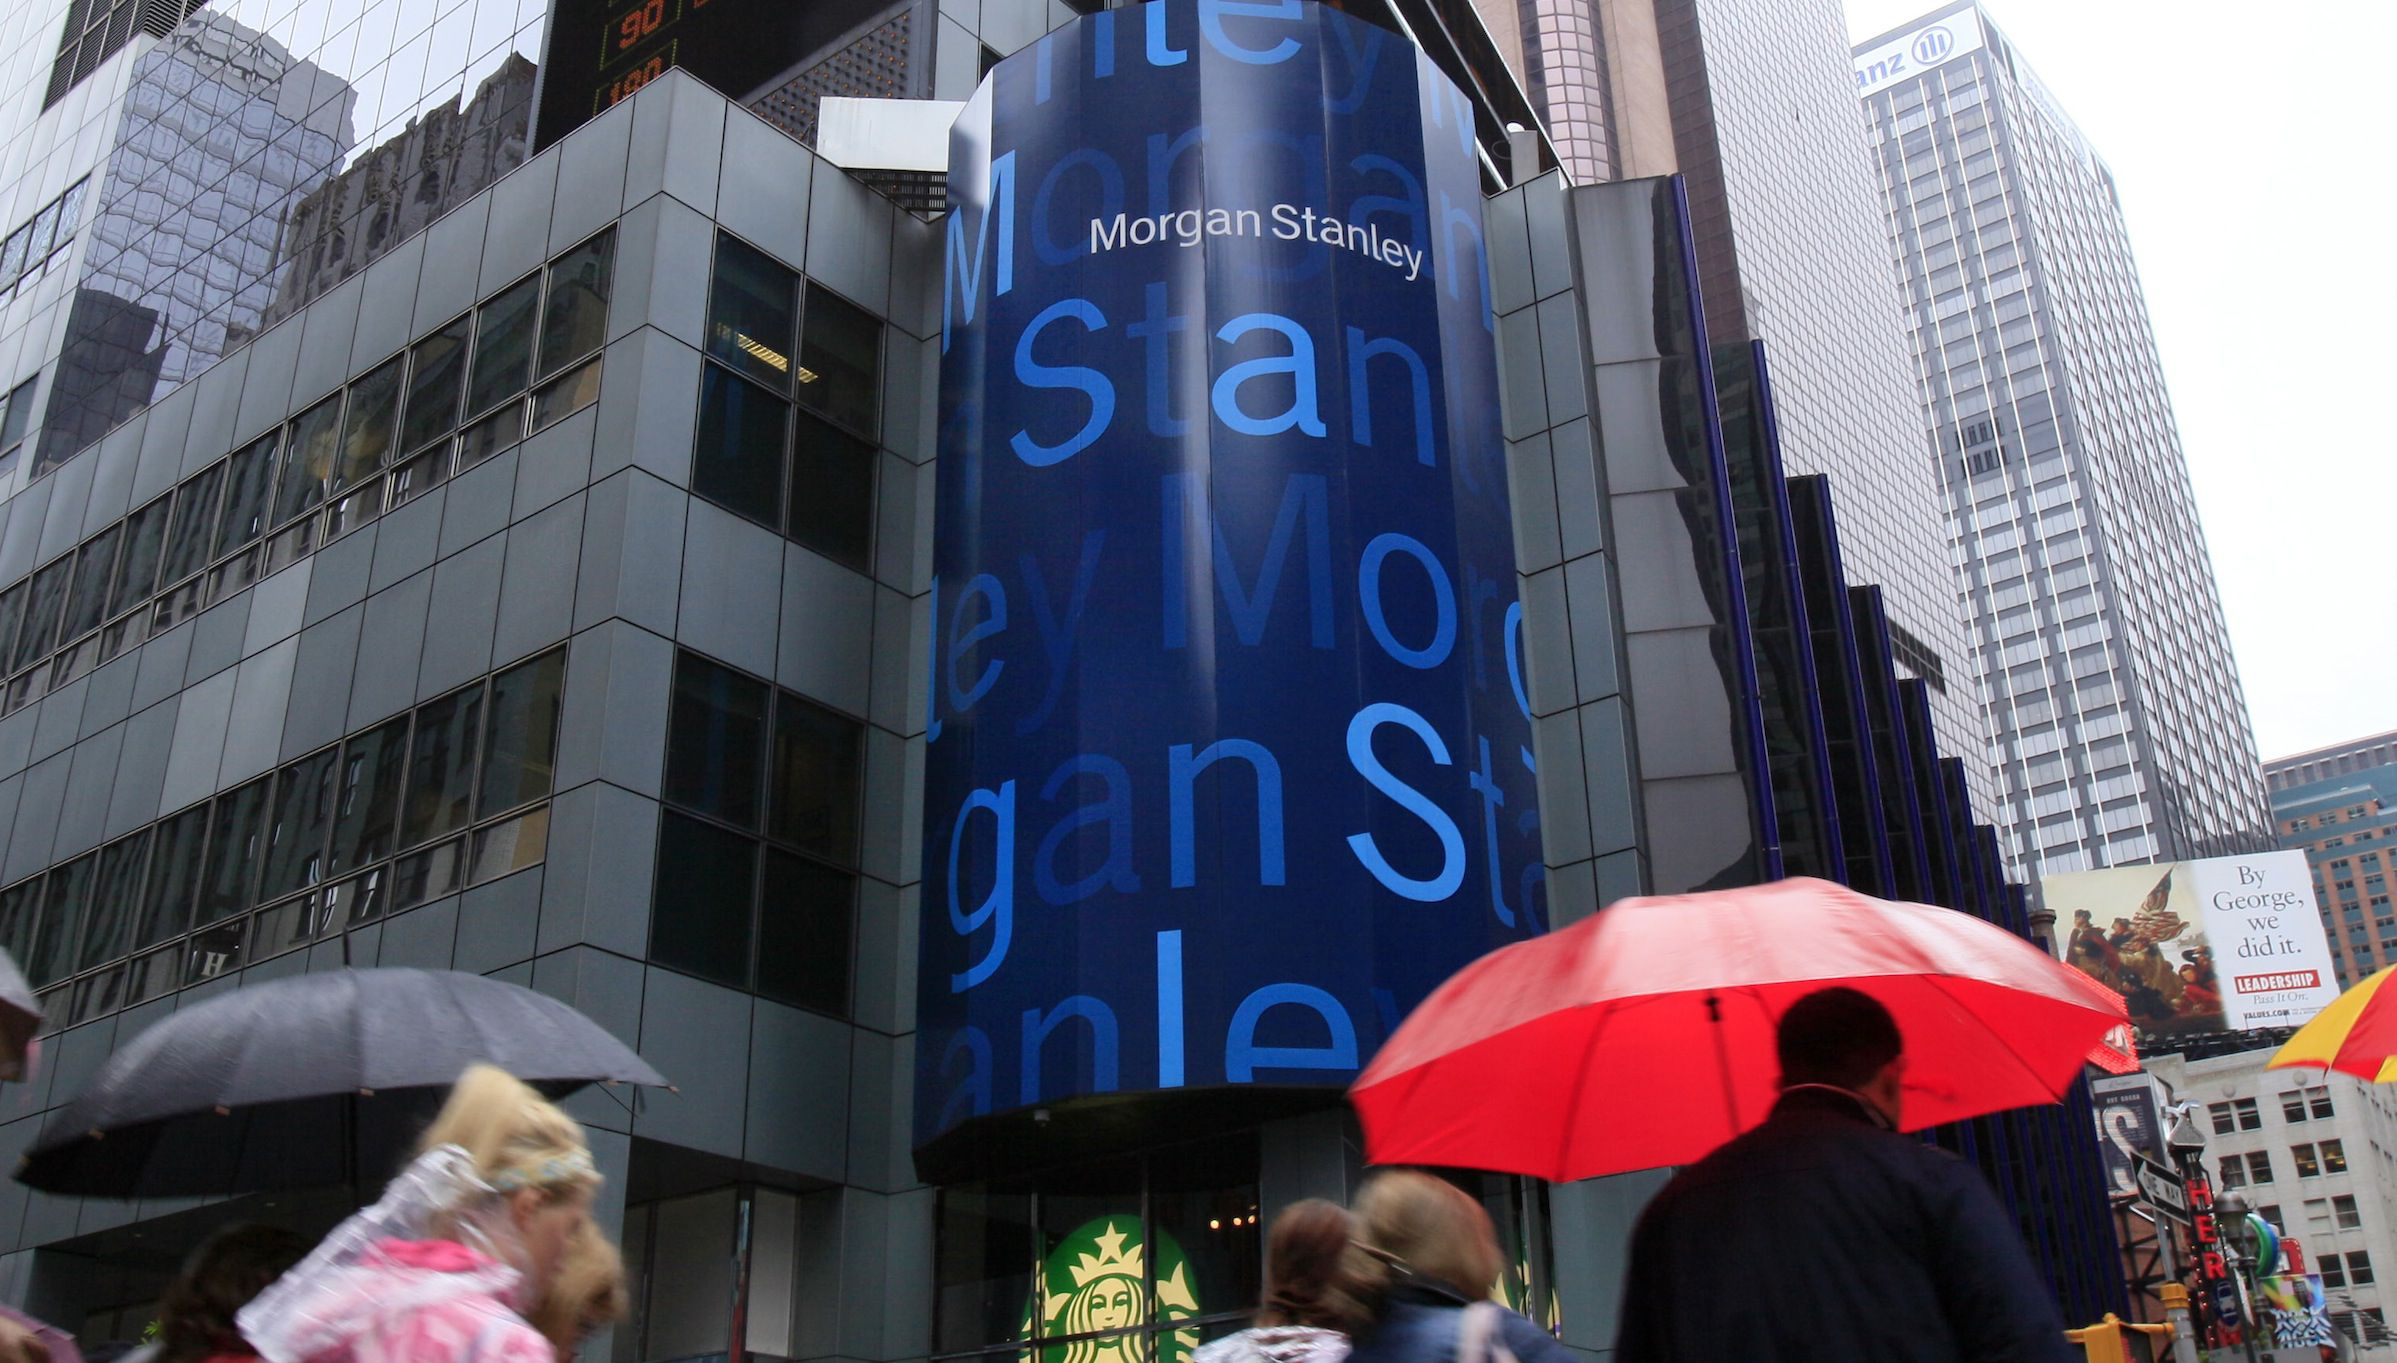 """People walk by Morgan Stanley headquarters in New York's Times Square, Monday, May 21, 2012. Although many investors had hoped for a big first-day pop, Facebook's stock opened Friday at $42.05 and fluctuated between $45 and $38 throughout the day before closing at $38.23. Wedbush analyst Michael Pachter, who came out with an """"Outperform"""" rating on Facebook before its IPO, said he thinks the investment banks that arranged the offering overestimated demand for the company's stock. Last week, the bankers, led by Morgan Stanley, increased the offering price range. (AP Photo/Richard Drew)"""